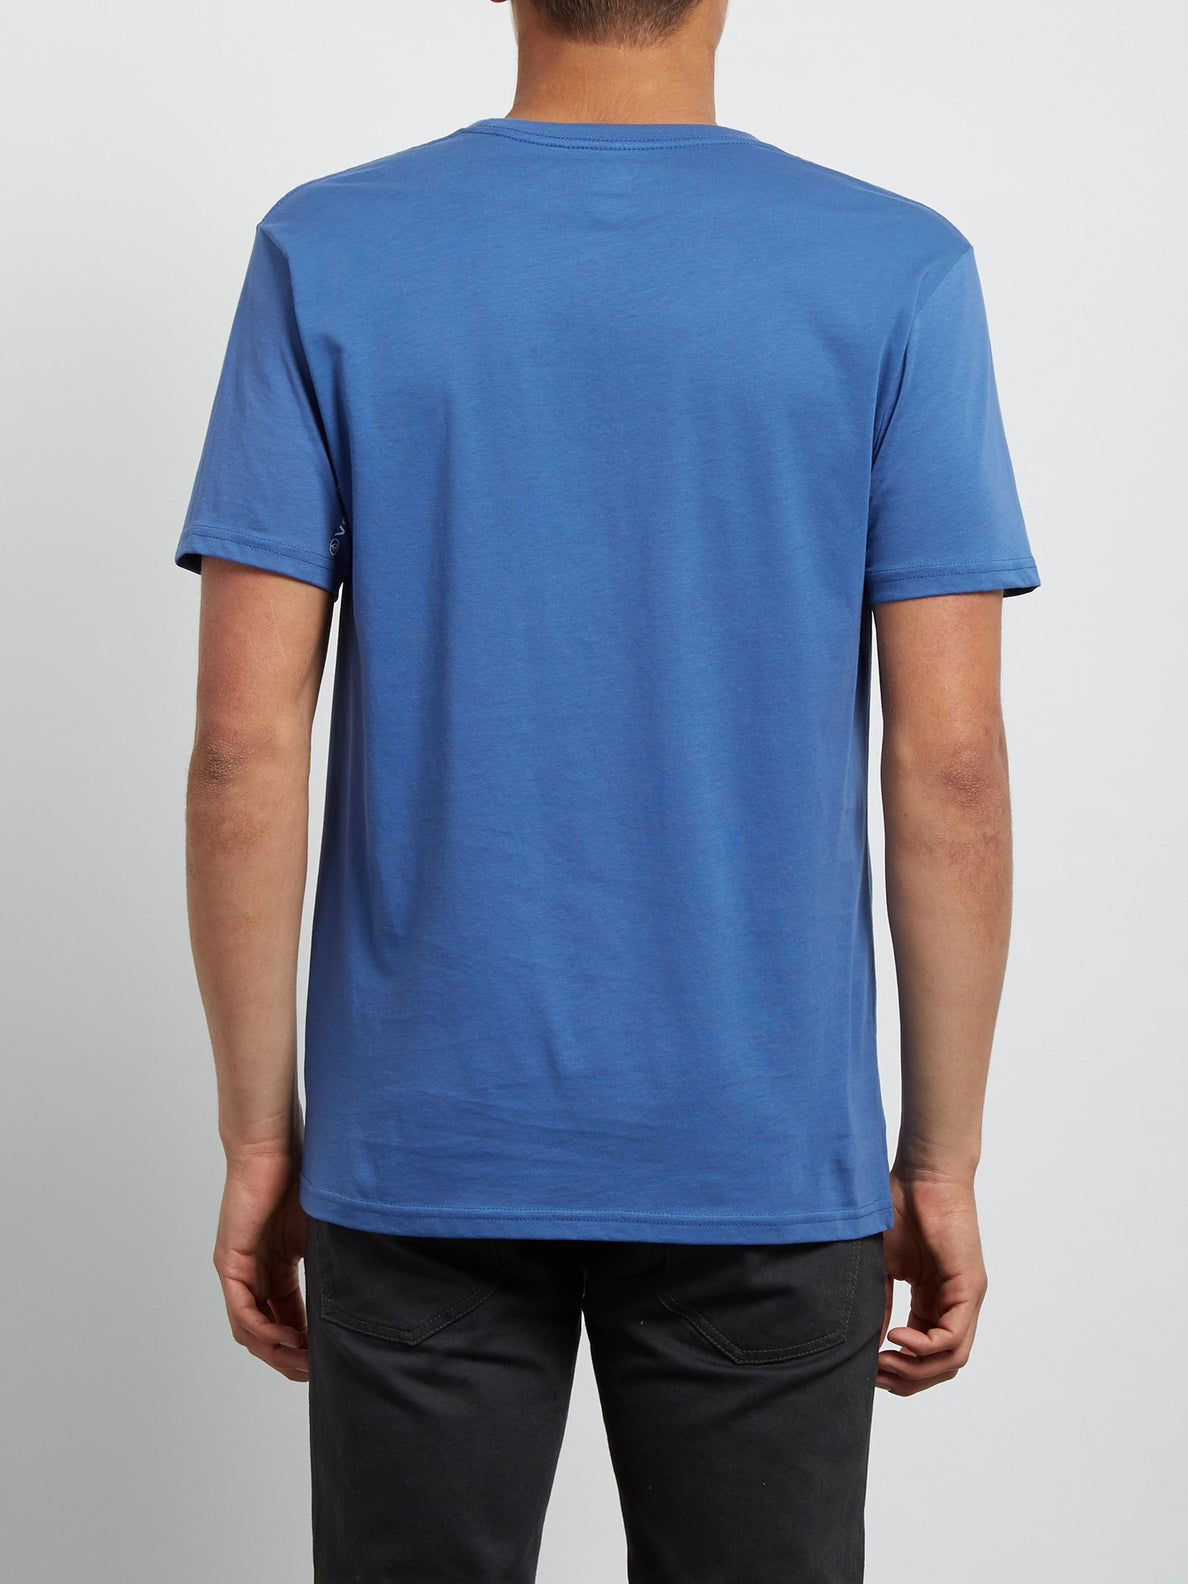 Crisp Tee - Blue Drift